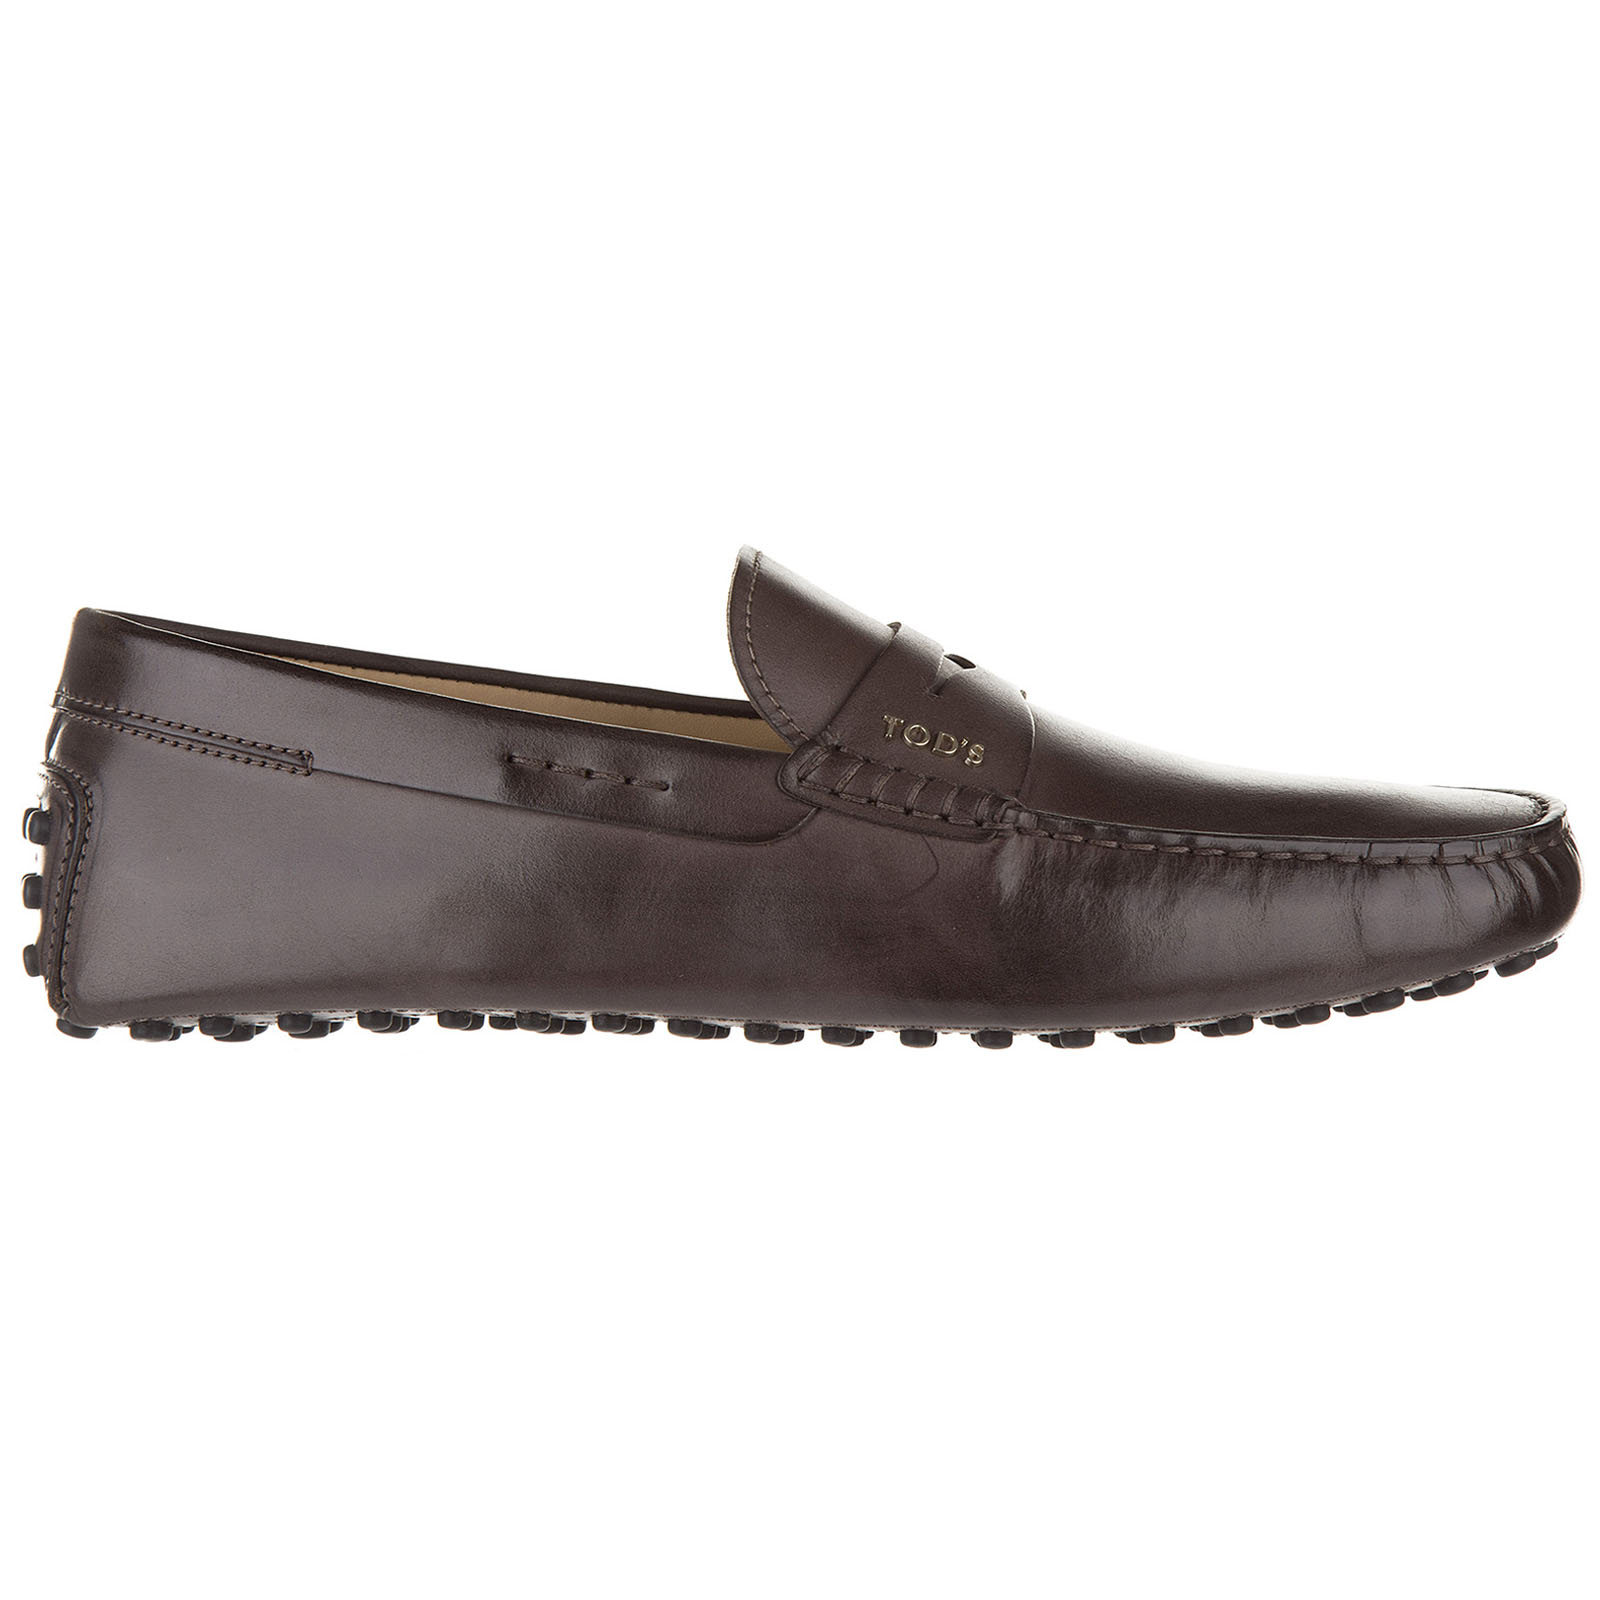 Men's leather loafers moccasins  letterine gommini wg